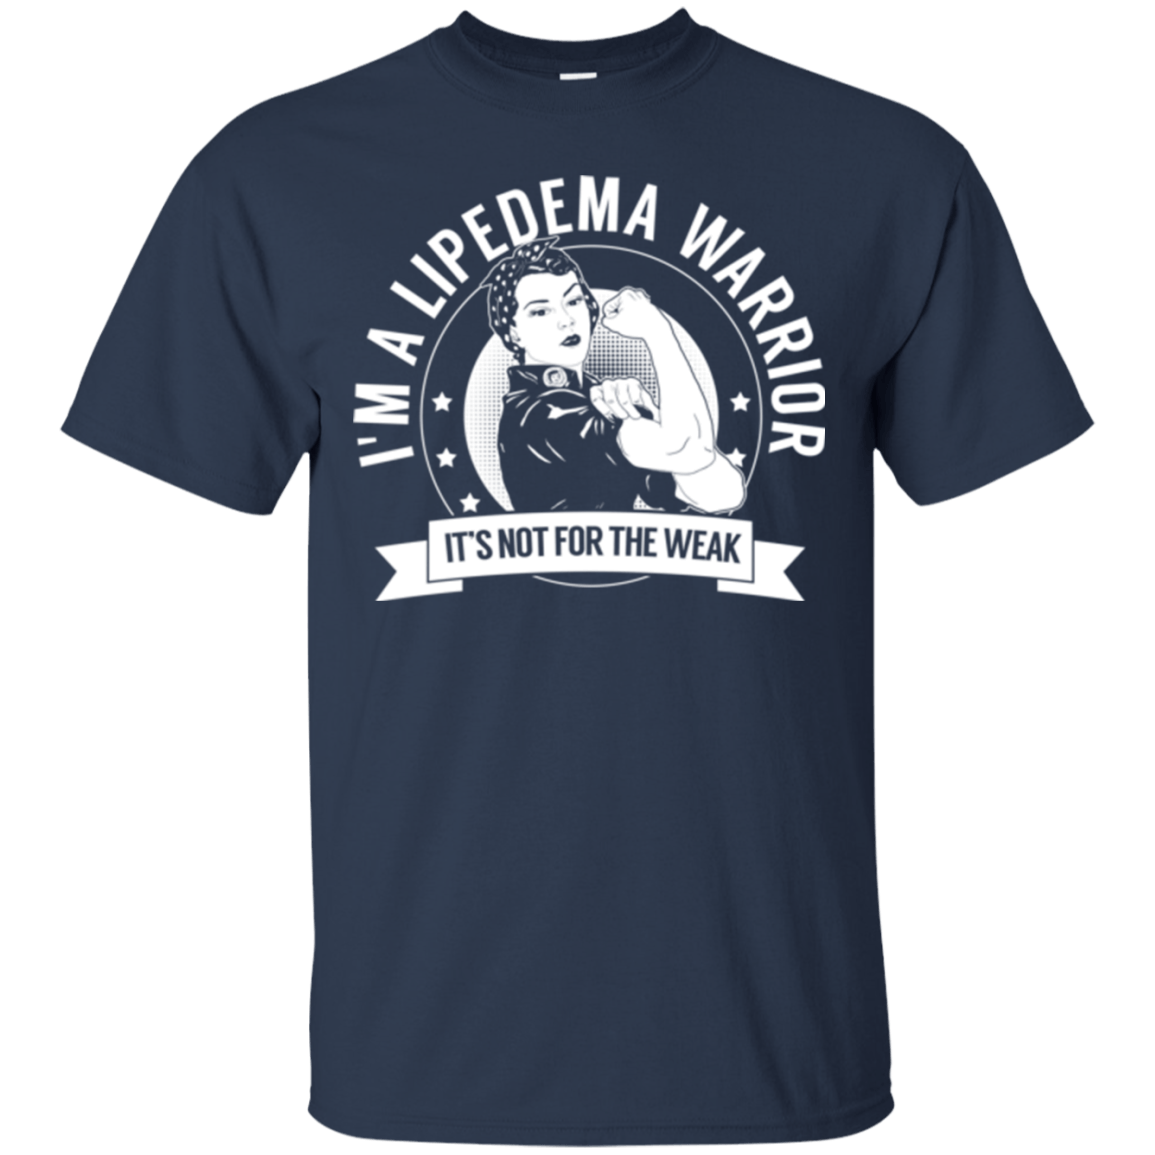 T-Shirts - Lipedema Warrior Not For The Weak Cotton T-Shirt